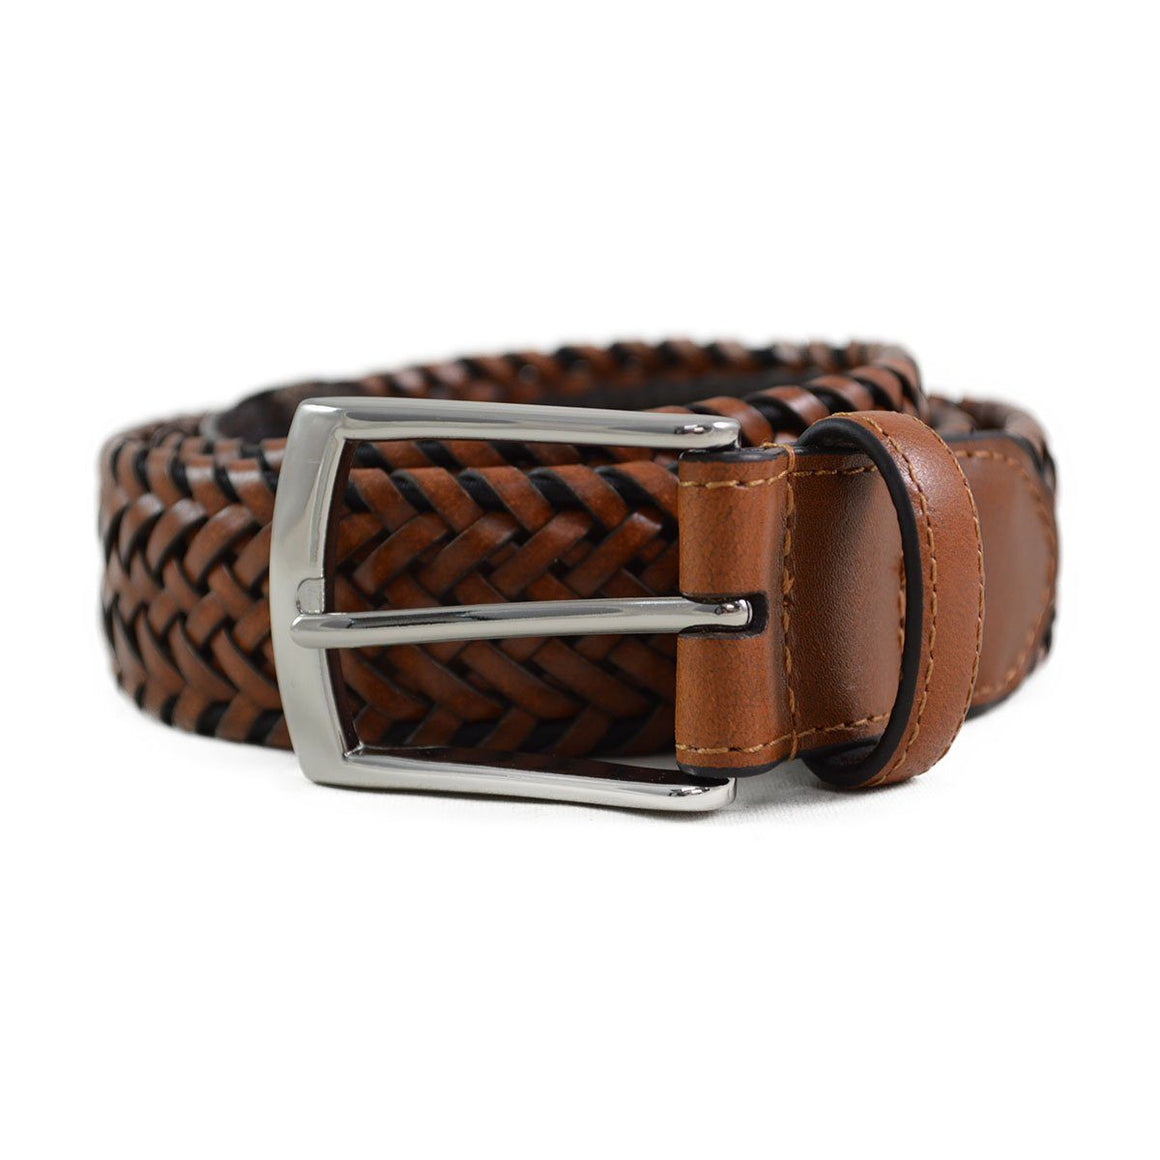 DENTS Plaited Leather Belt - Tan